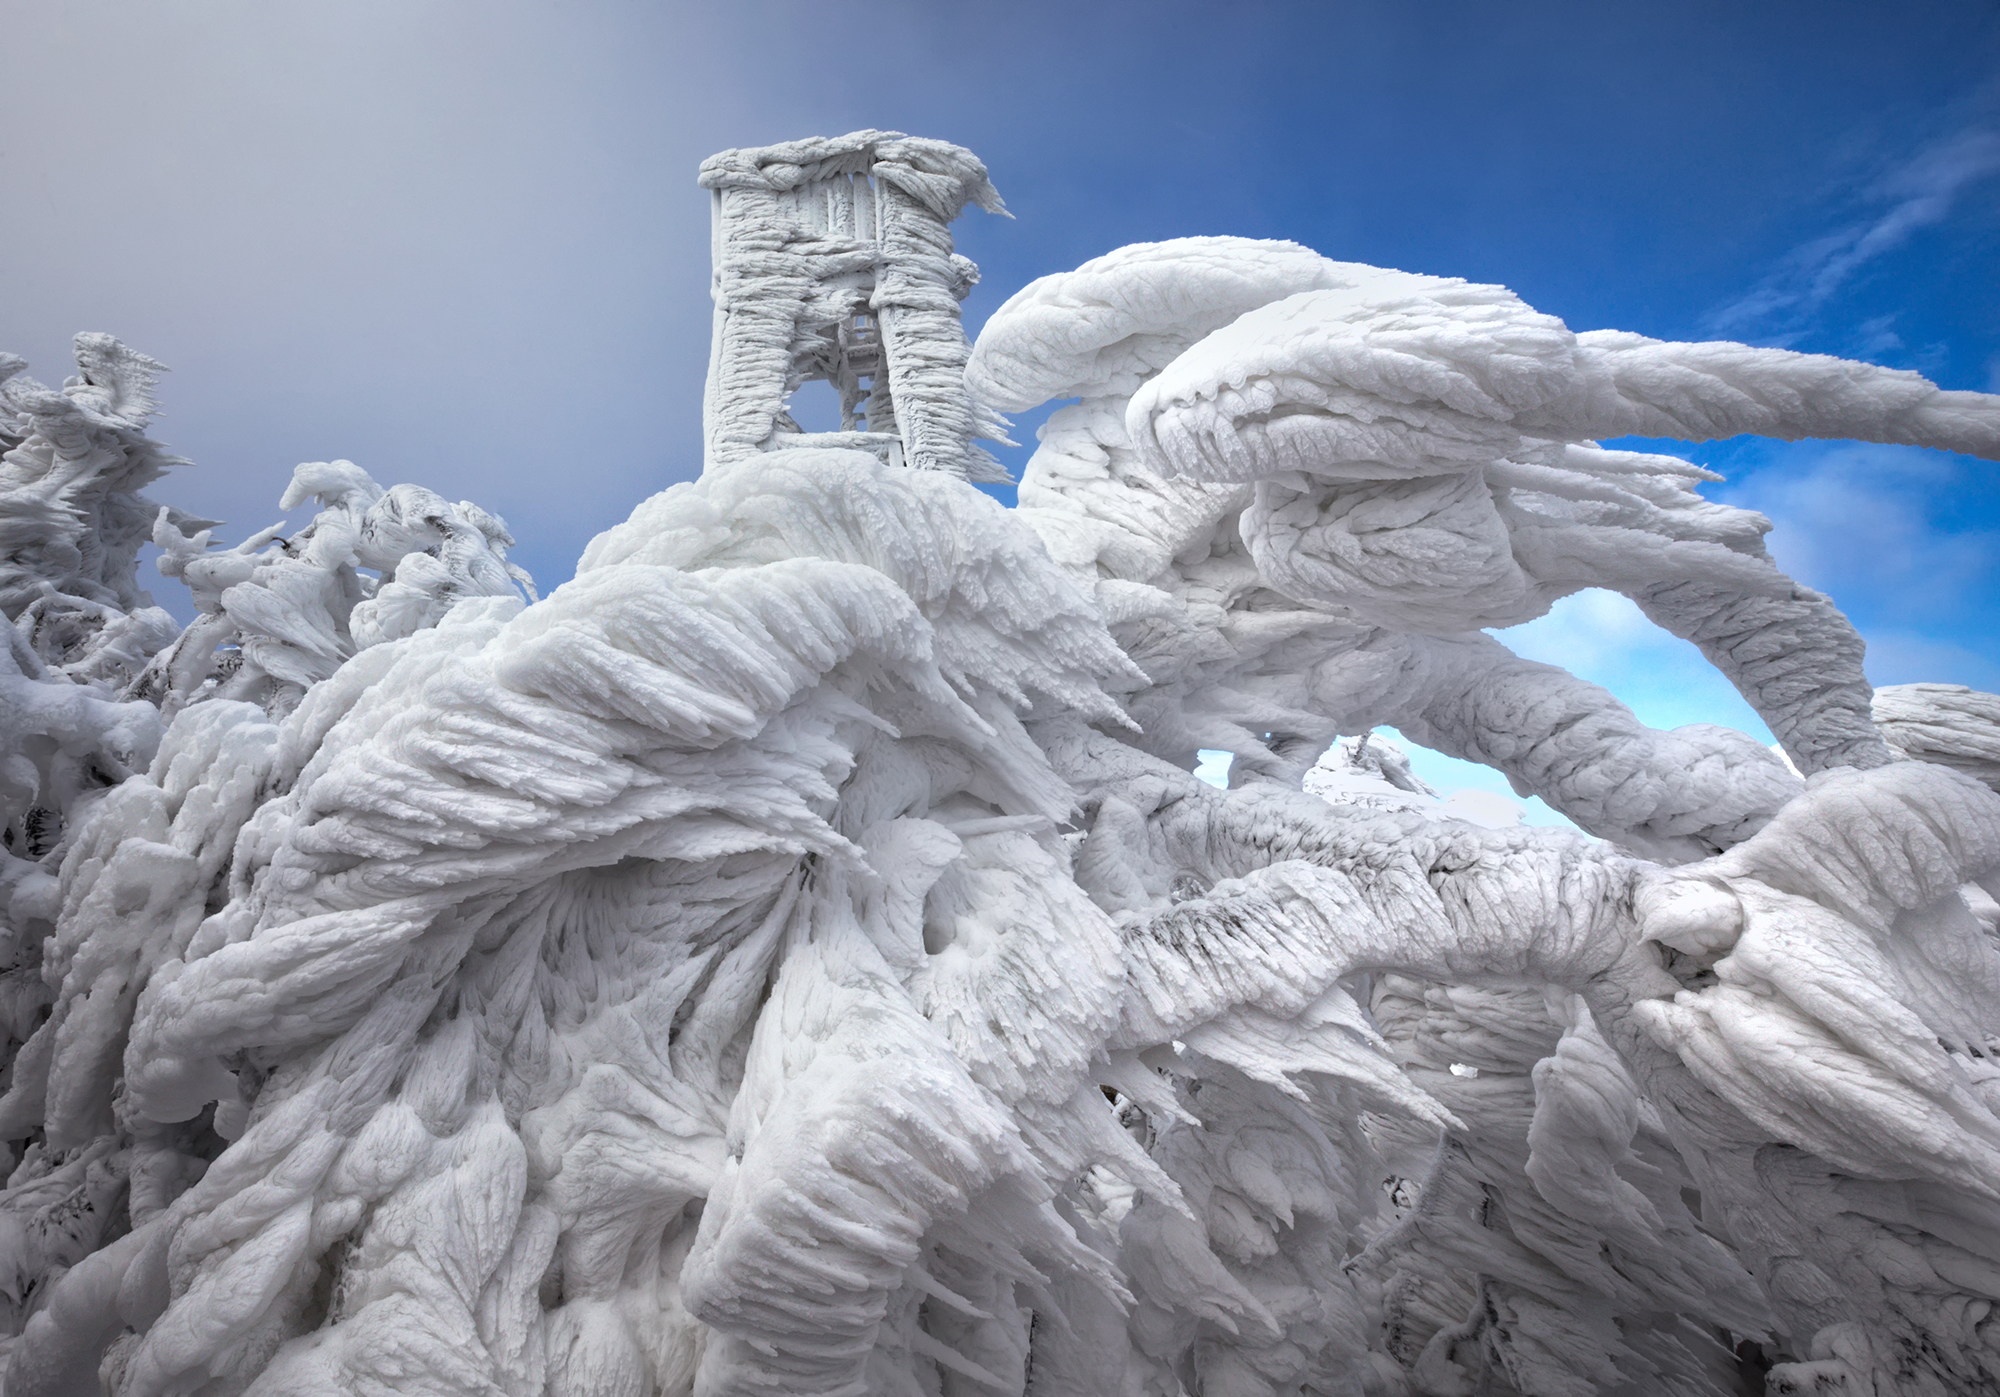 ***EXCLUSIVE***JAVORNIK, SLOVENIA - DECEMBER 9: Ice formations are seen on the arctic landscape on Mount Javornik on December 9, 2014 in Javornik, Slovenia.*GC*